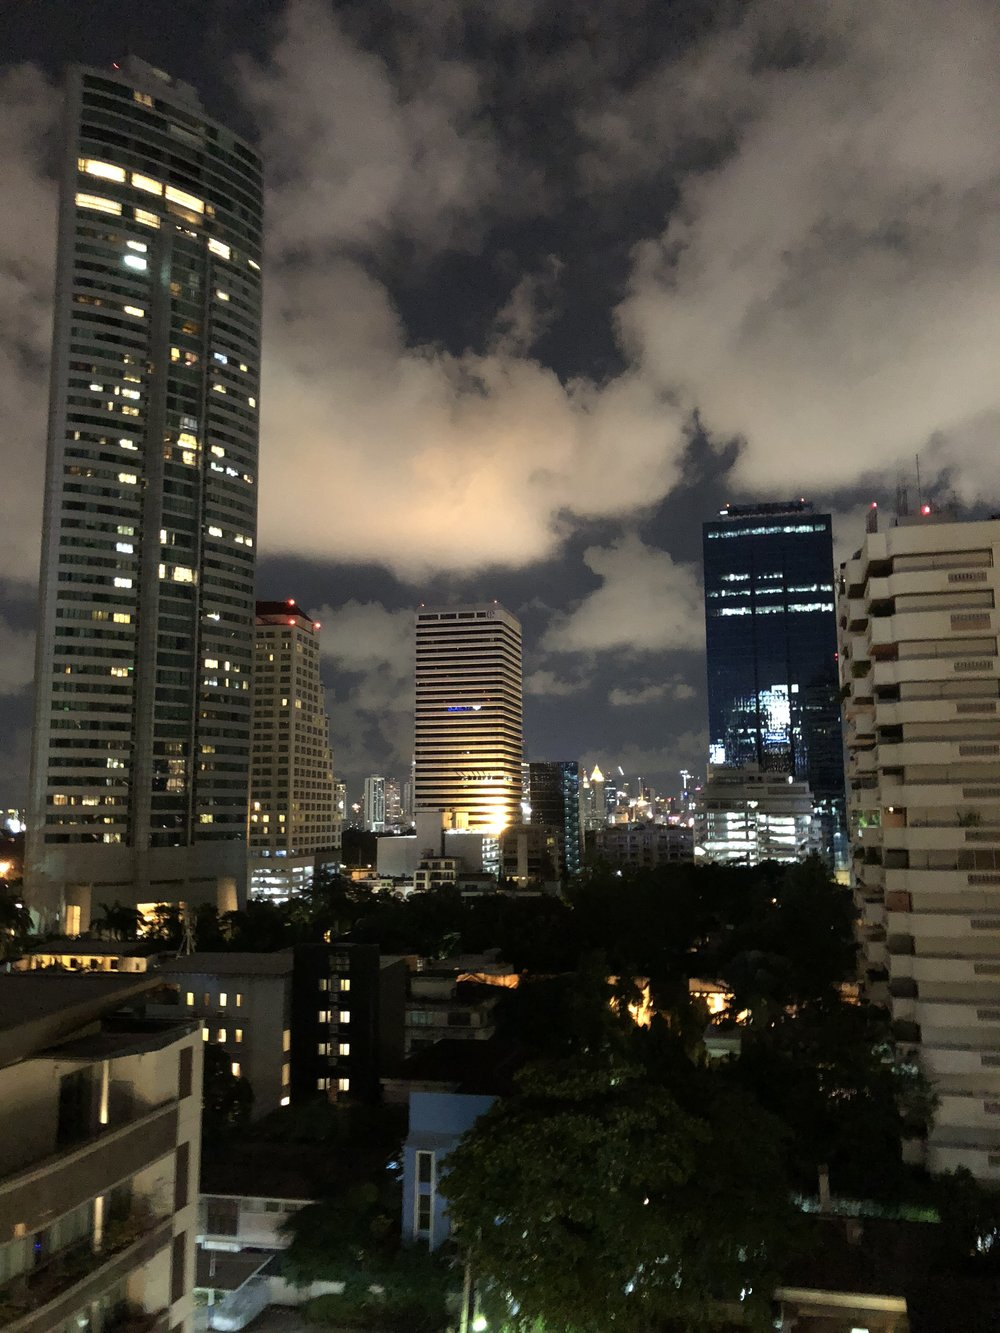 Novotel Hotel Night Views